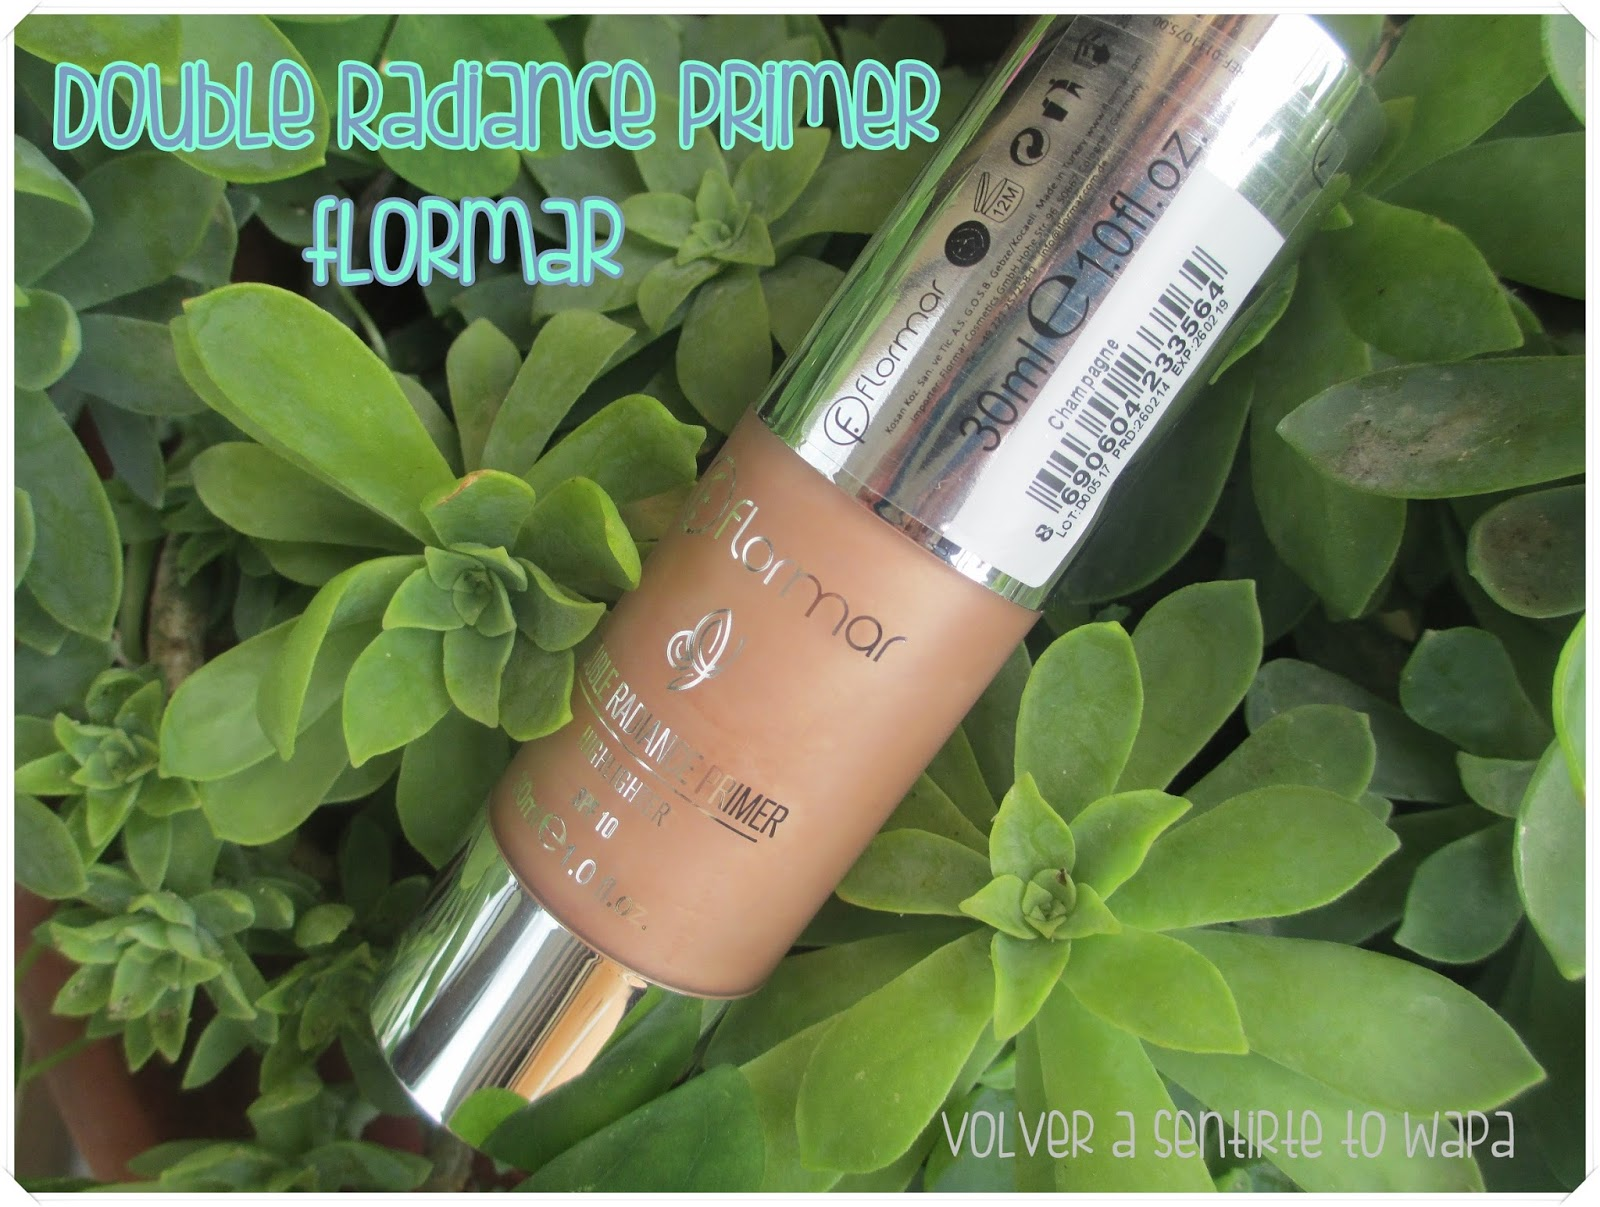 Double Radiance Primer Highlighter de FLORMAR, colección Reborn